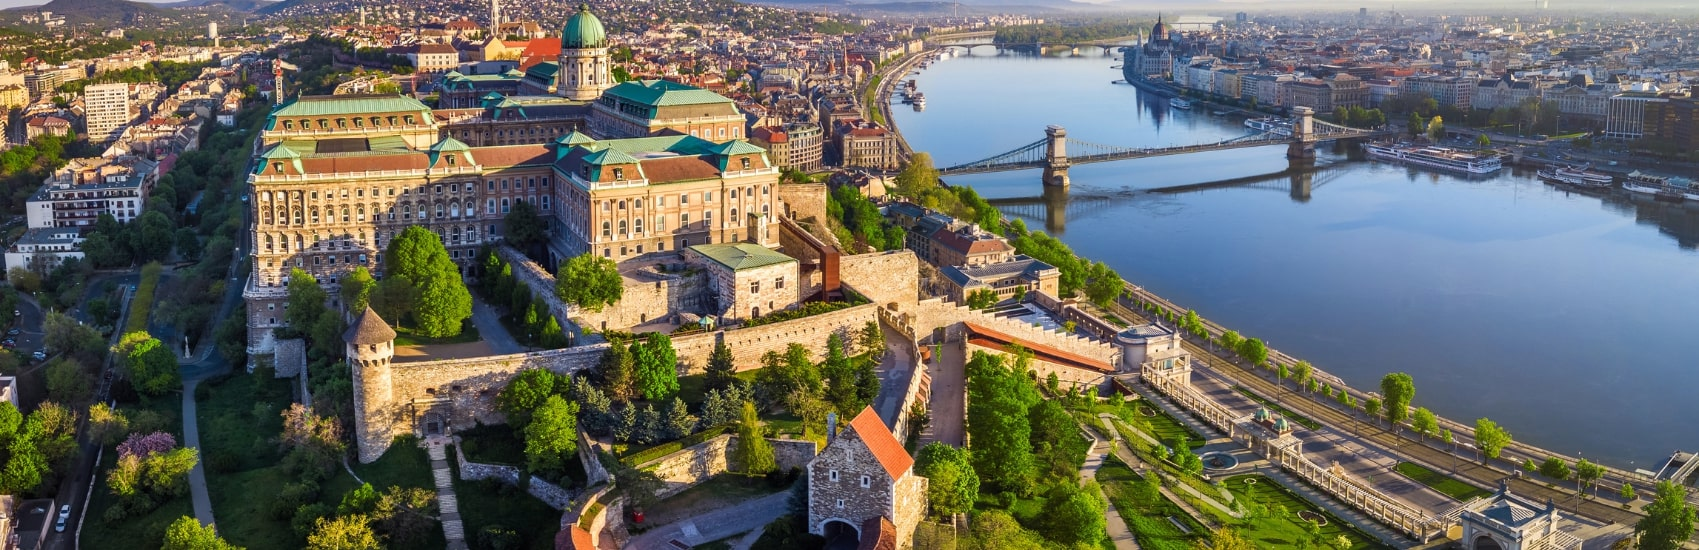 Active & Discovery on the Danube with 2 Nights in Prague 0